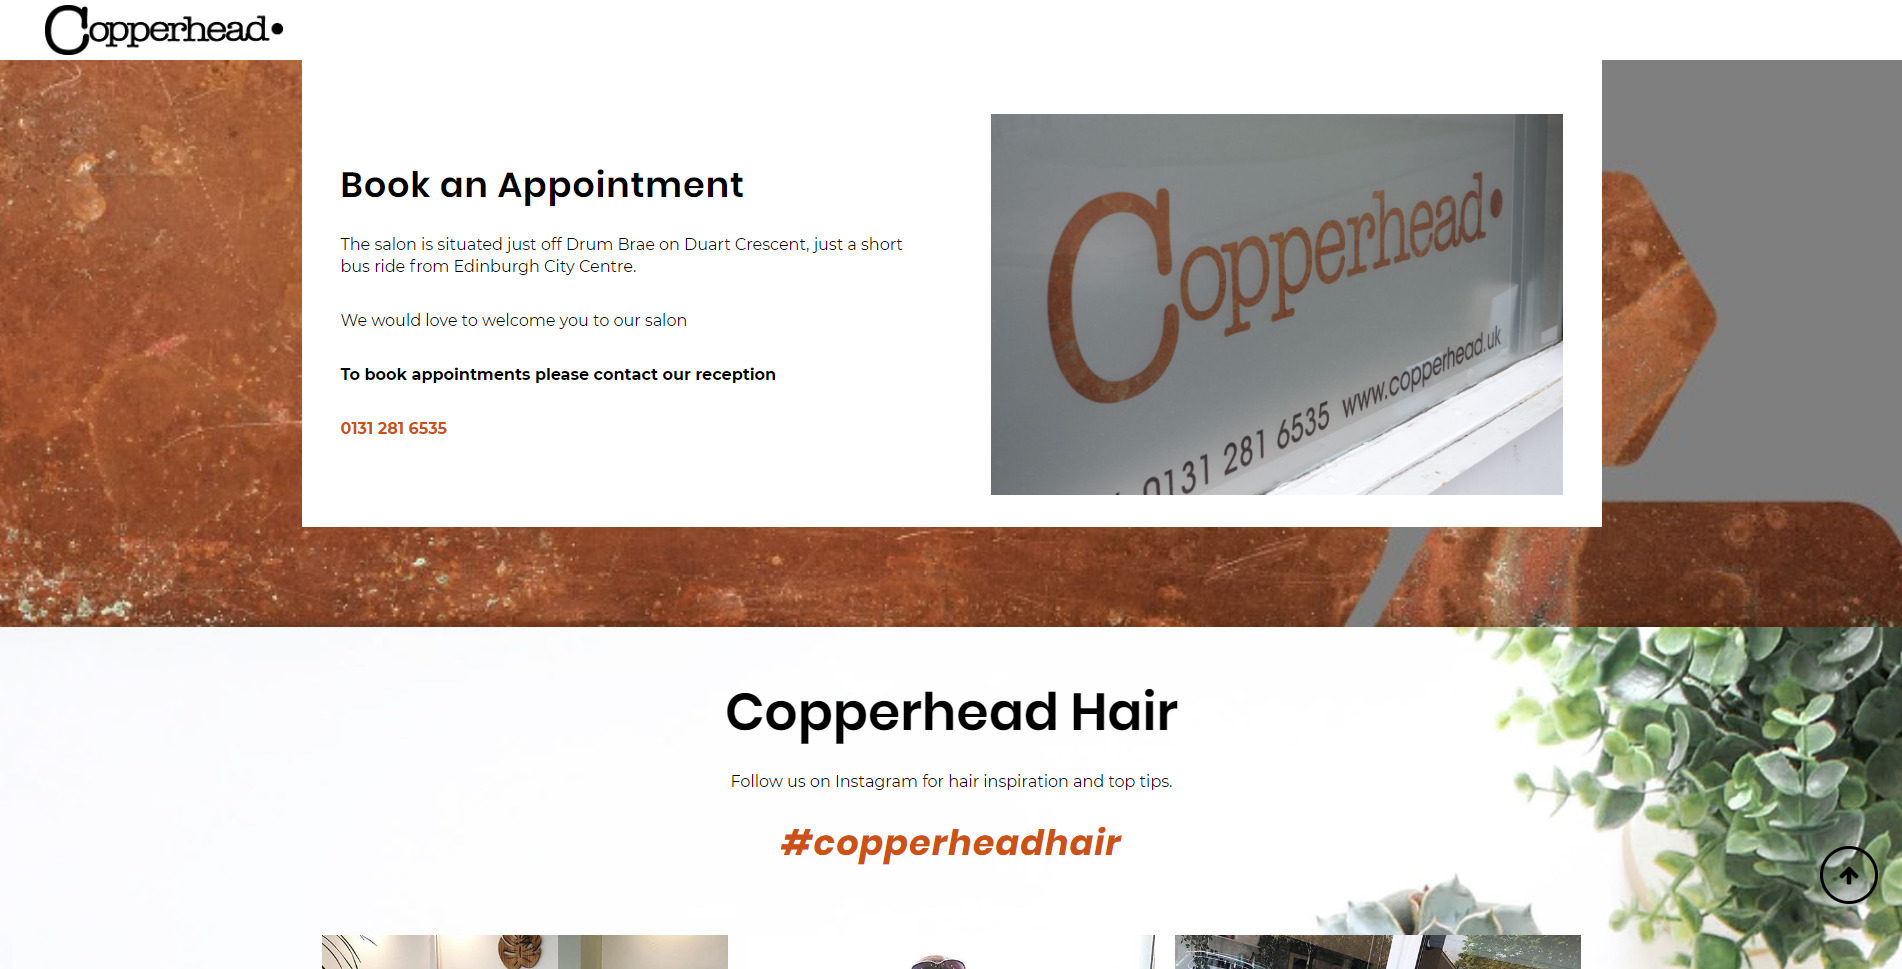 copperhead hairdressers website design